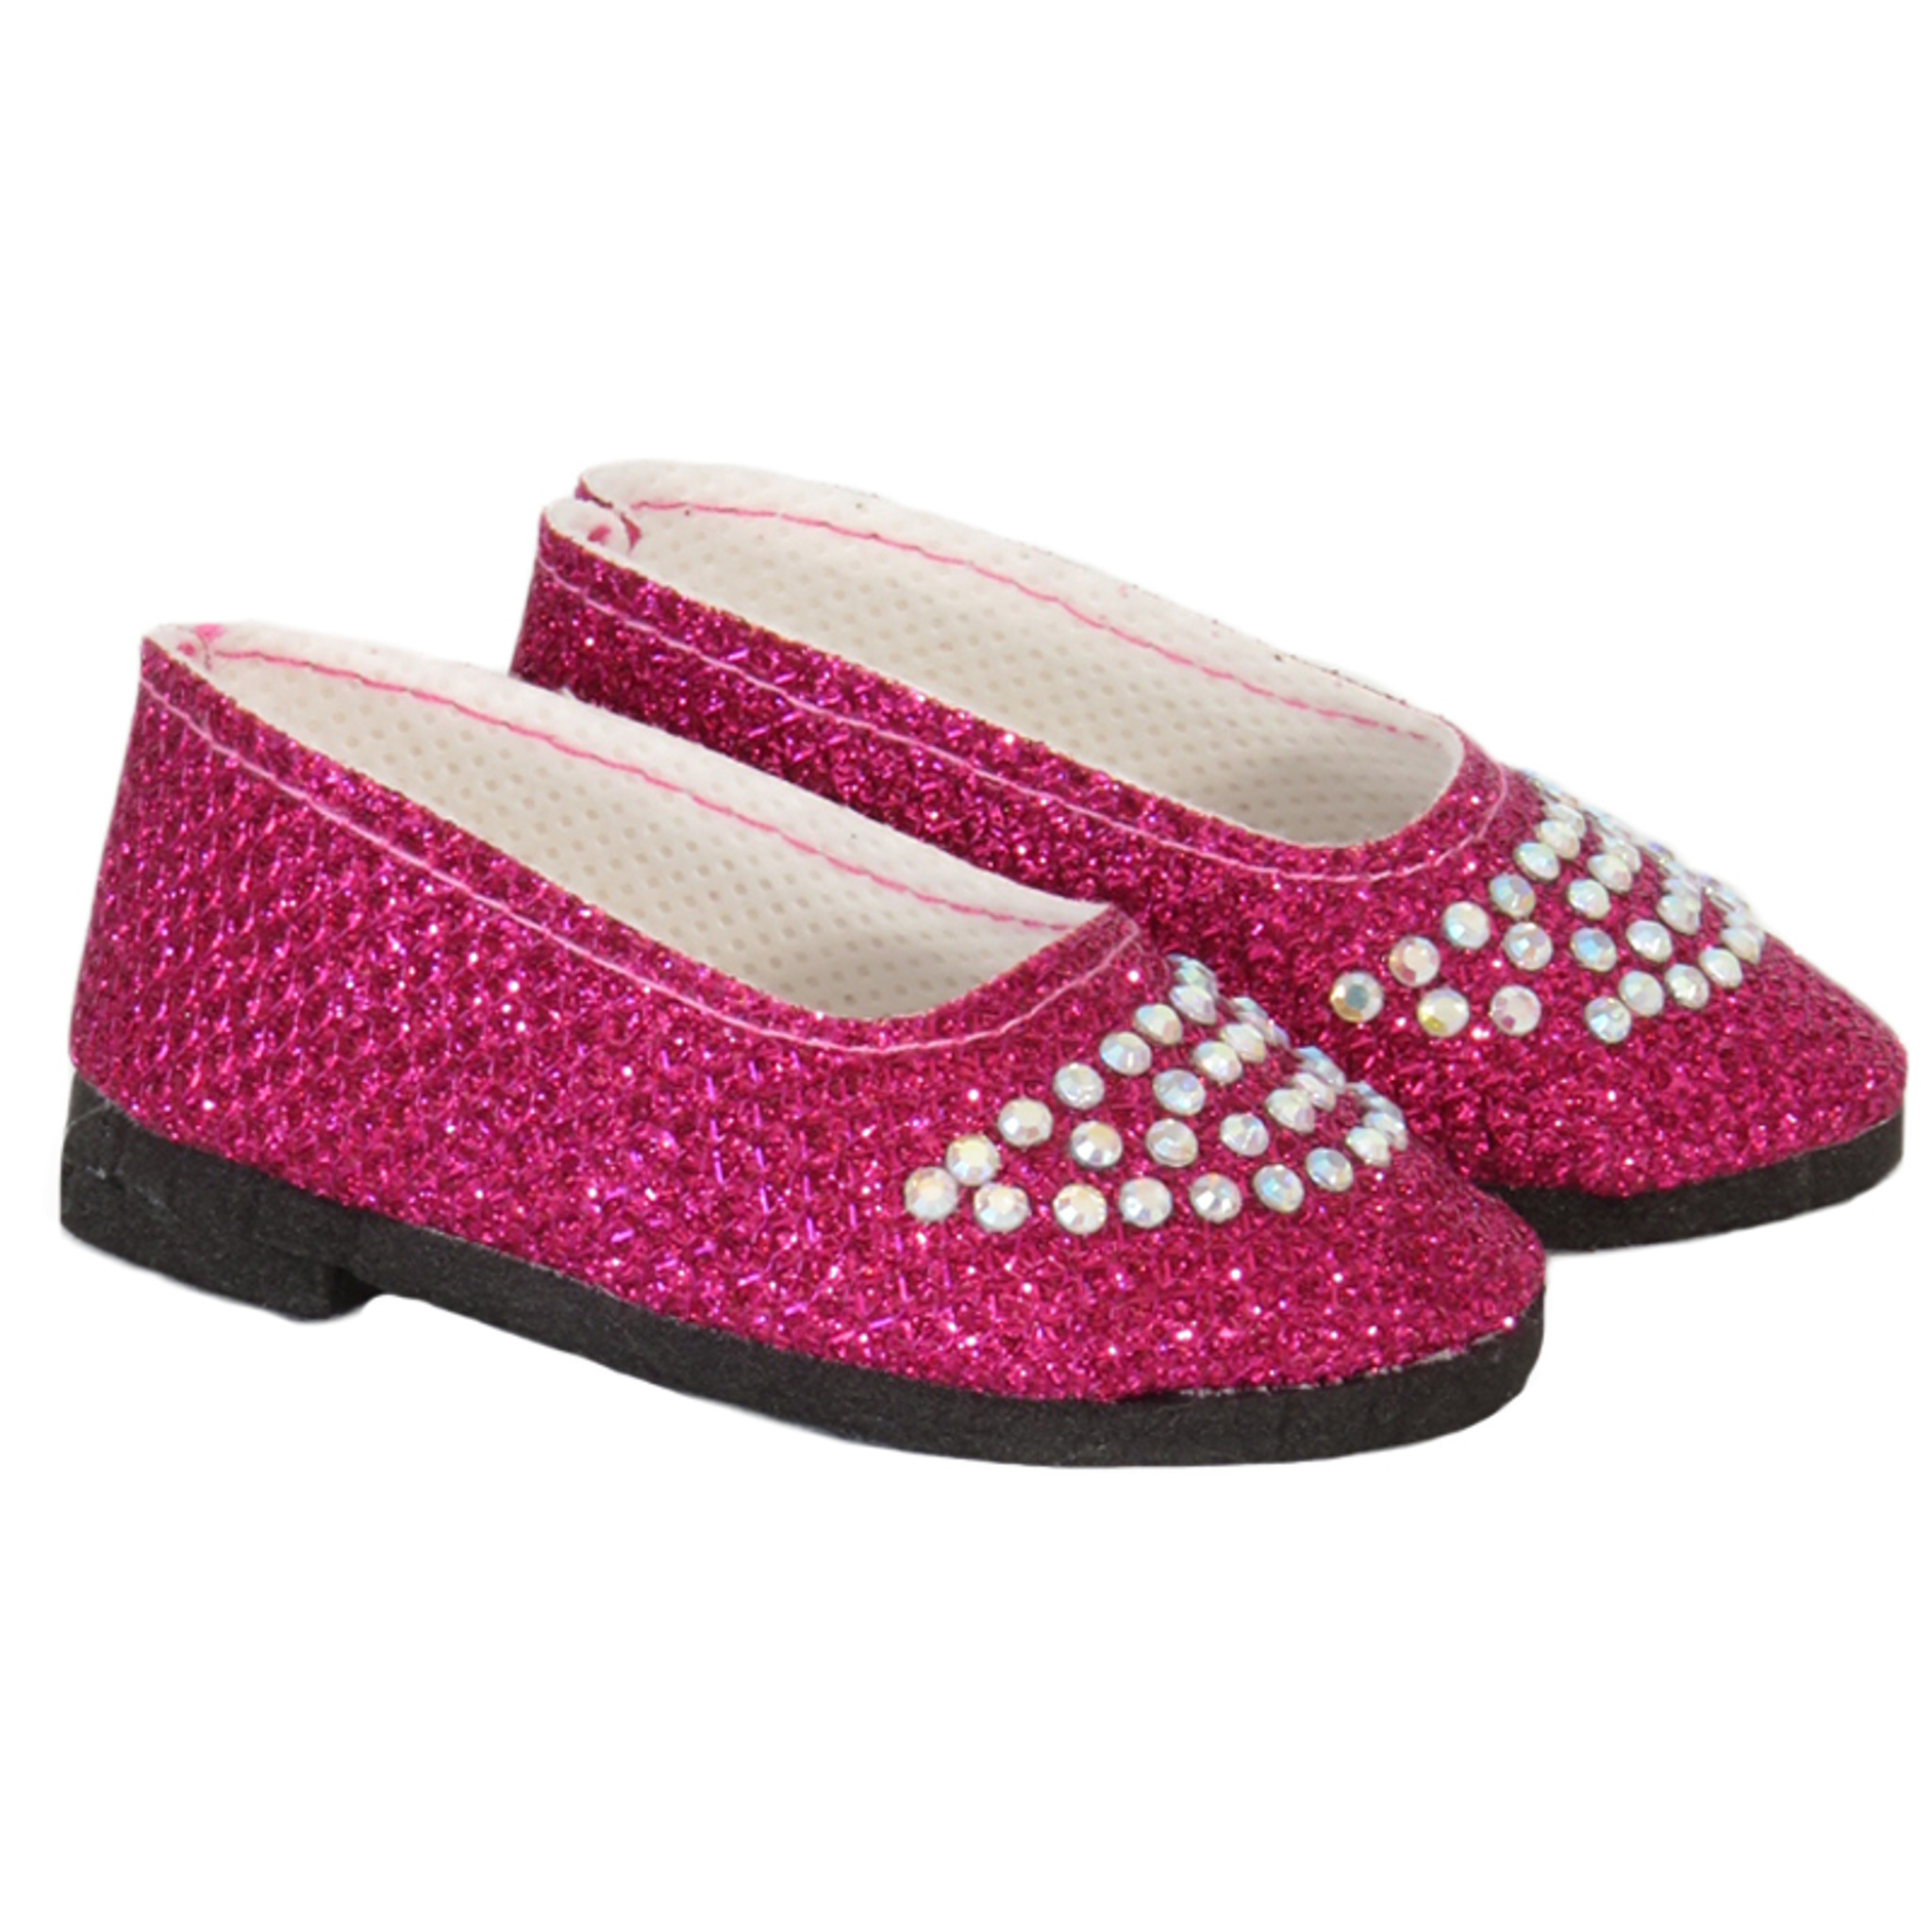 Pink Glitter Slip On Shoes 18 in Doll Clothes Fits American Girl